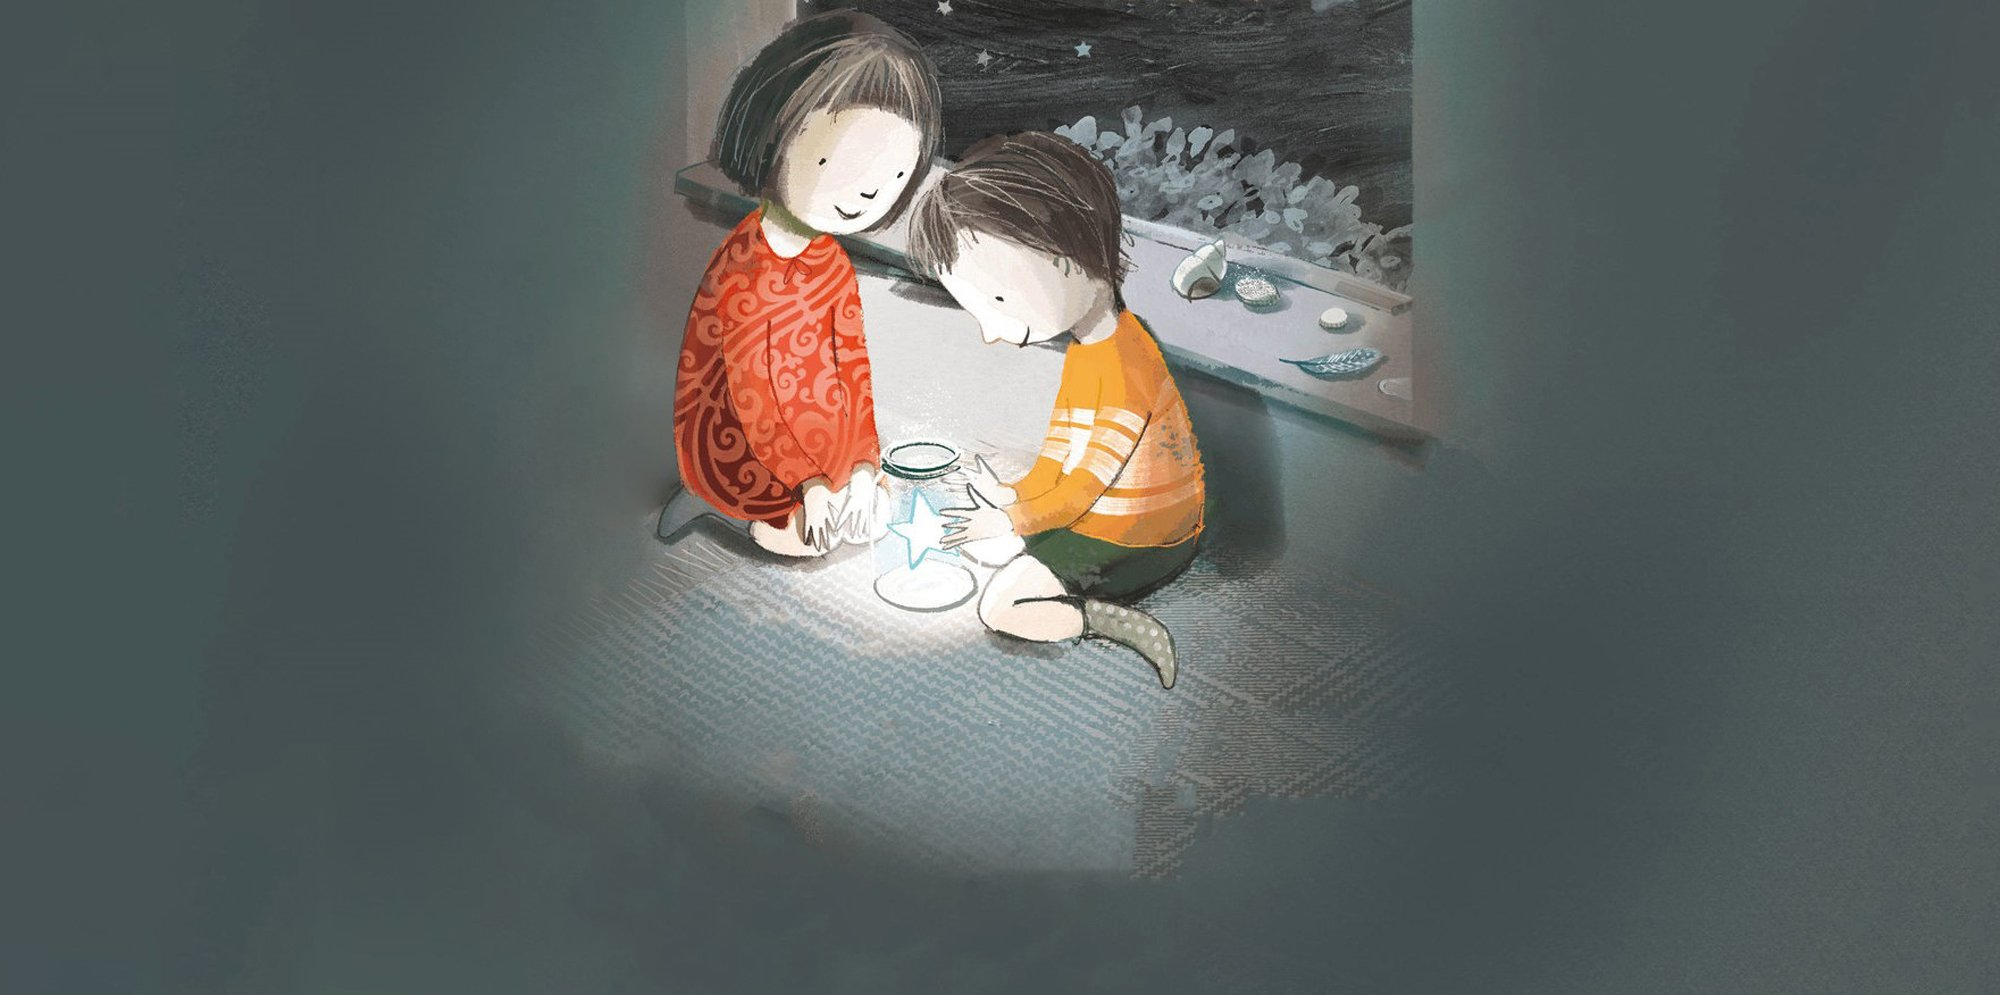 An illustration of a boy and a girl knelt by a window at night. There is a small star in a jar that the boy is holding.